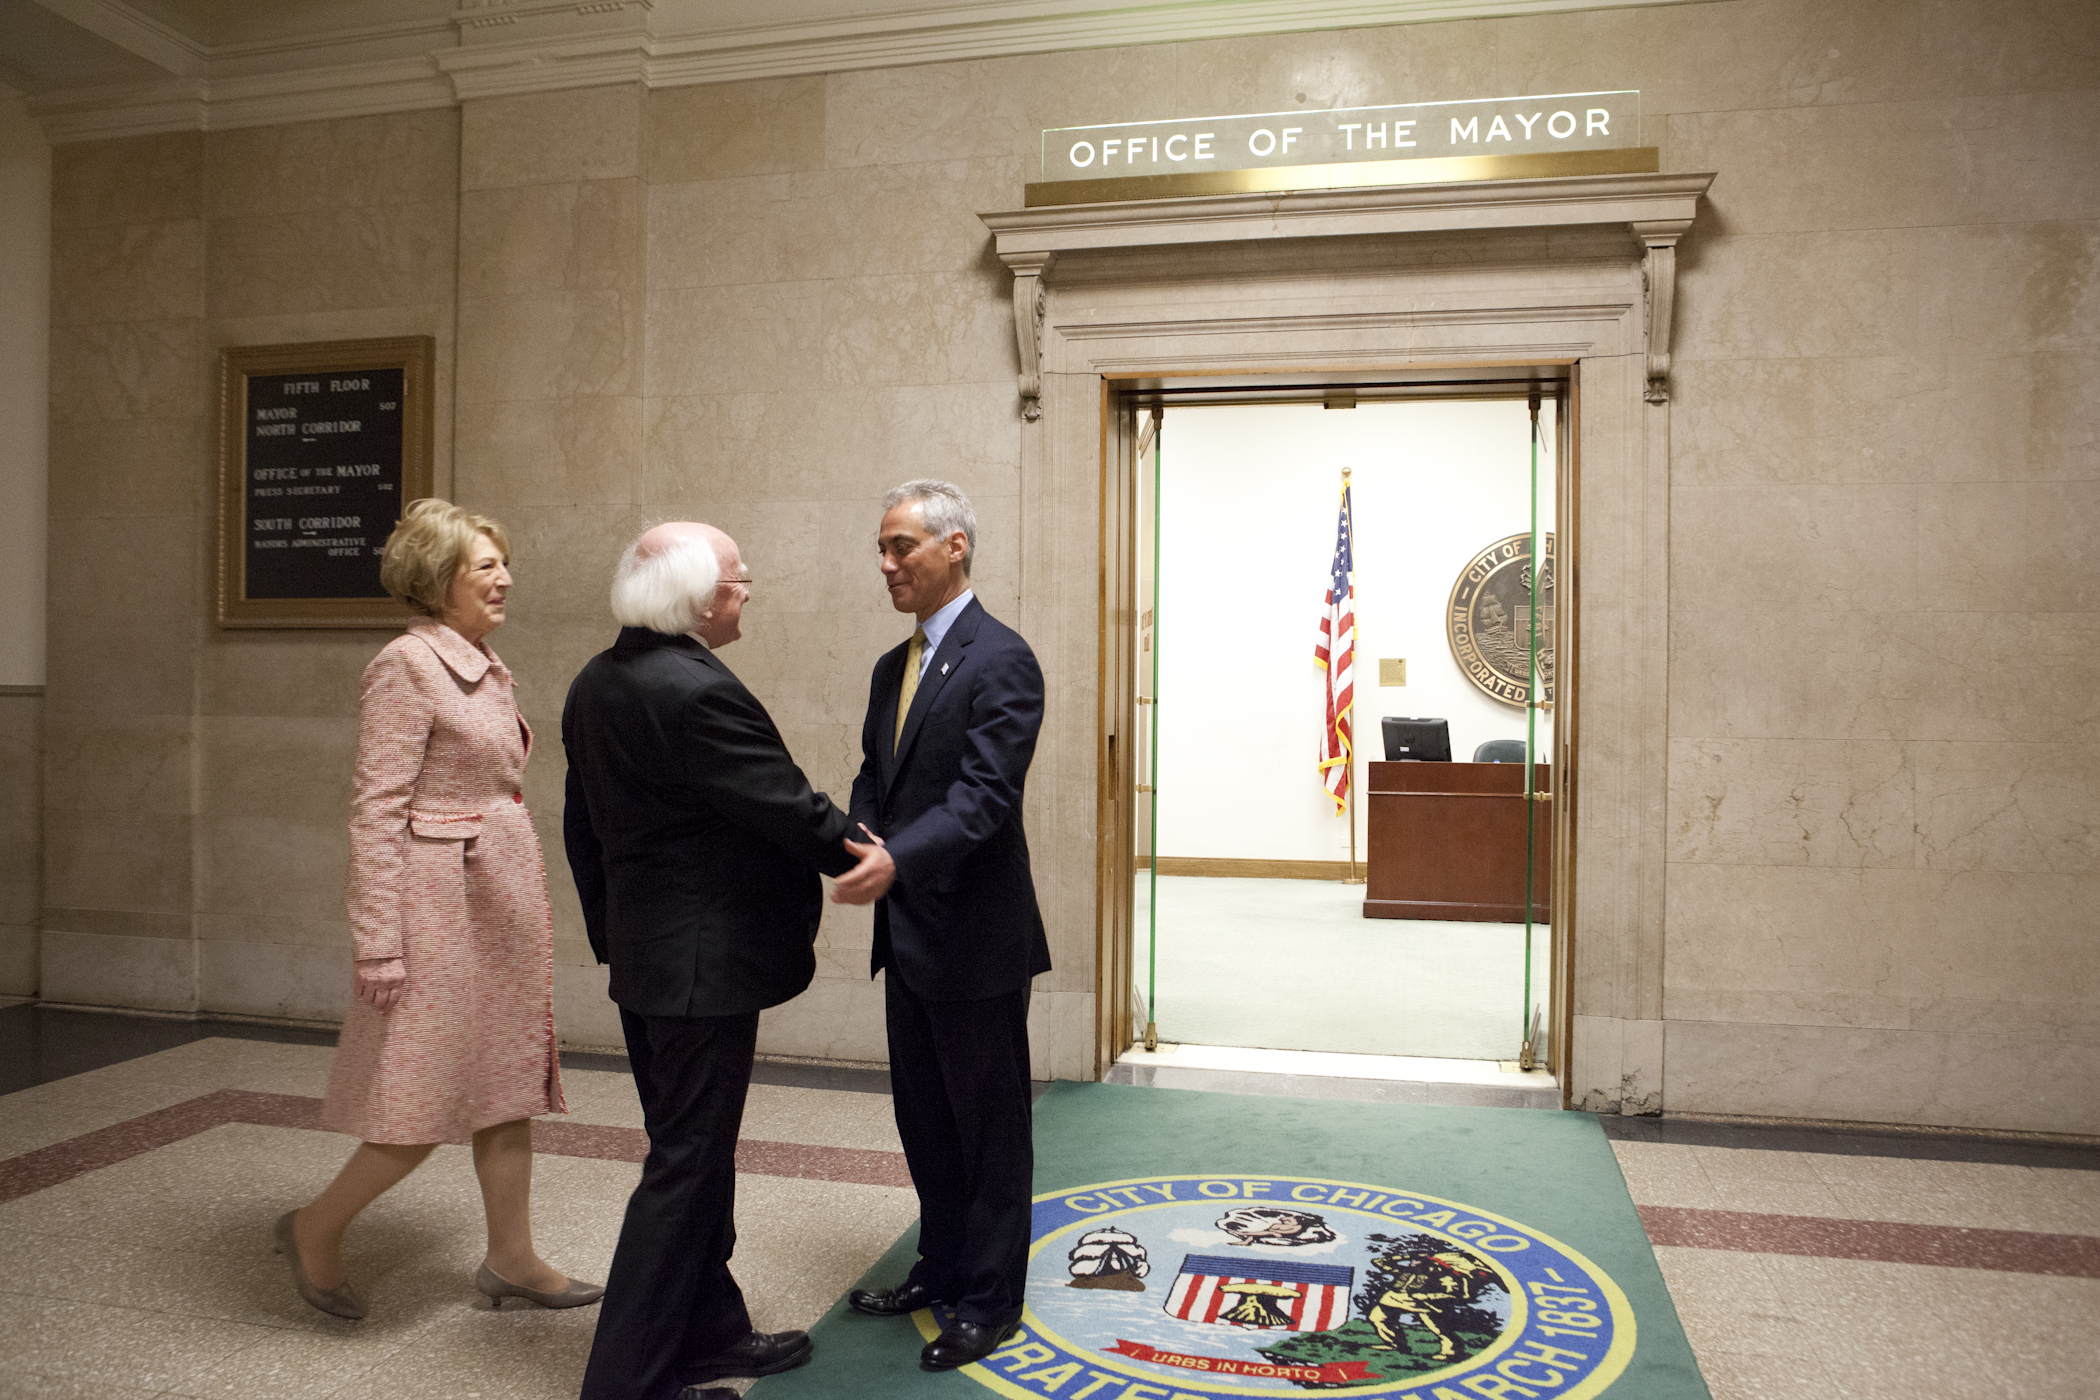 Mayor Rahm Emanuel welcomes His Excellency President Michael D. Higgins, President of Ireland, and Mrs. Sabina Higgins, First Lady of Ireland, to Chicago.